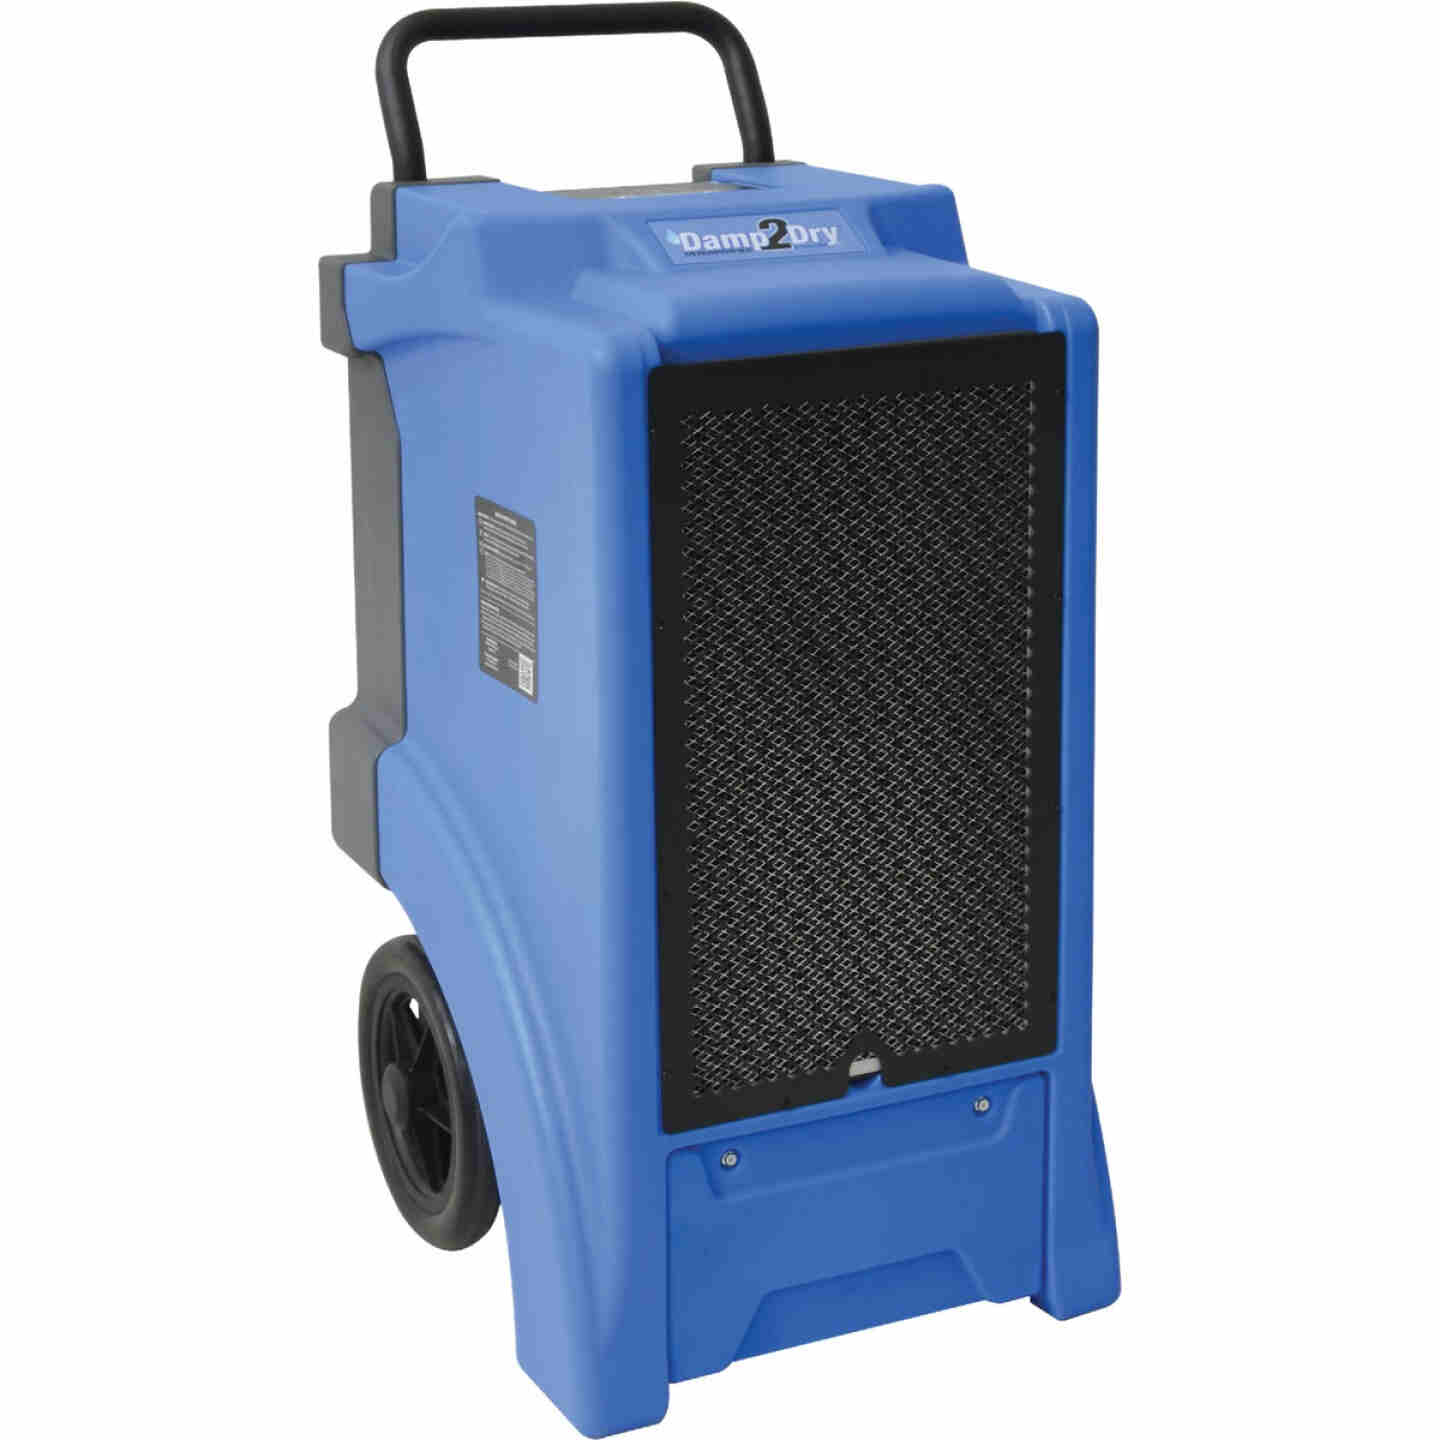 Perfect Aire Damp2Dry 250 Pt./Day 15,500 Sq. Ft. Commercial Dehumidifier Image 1